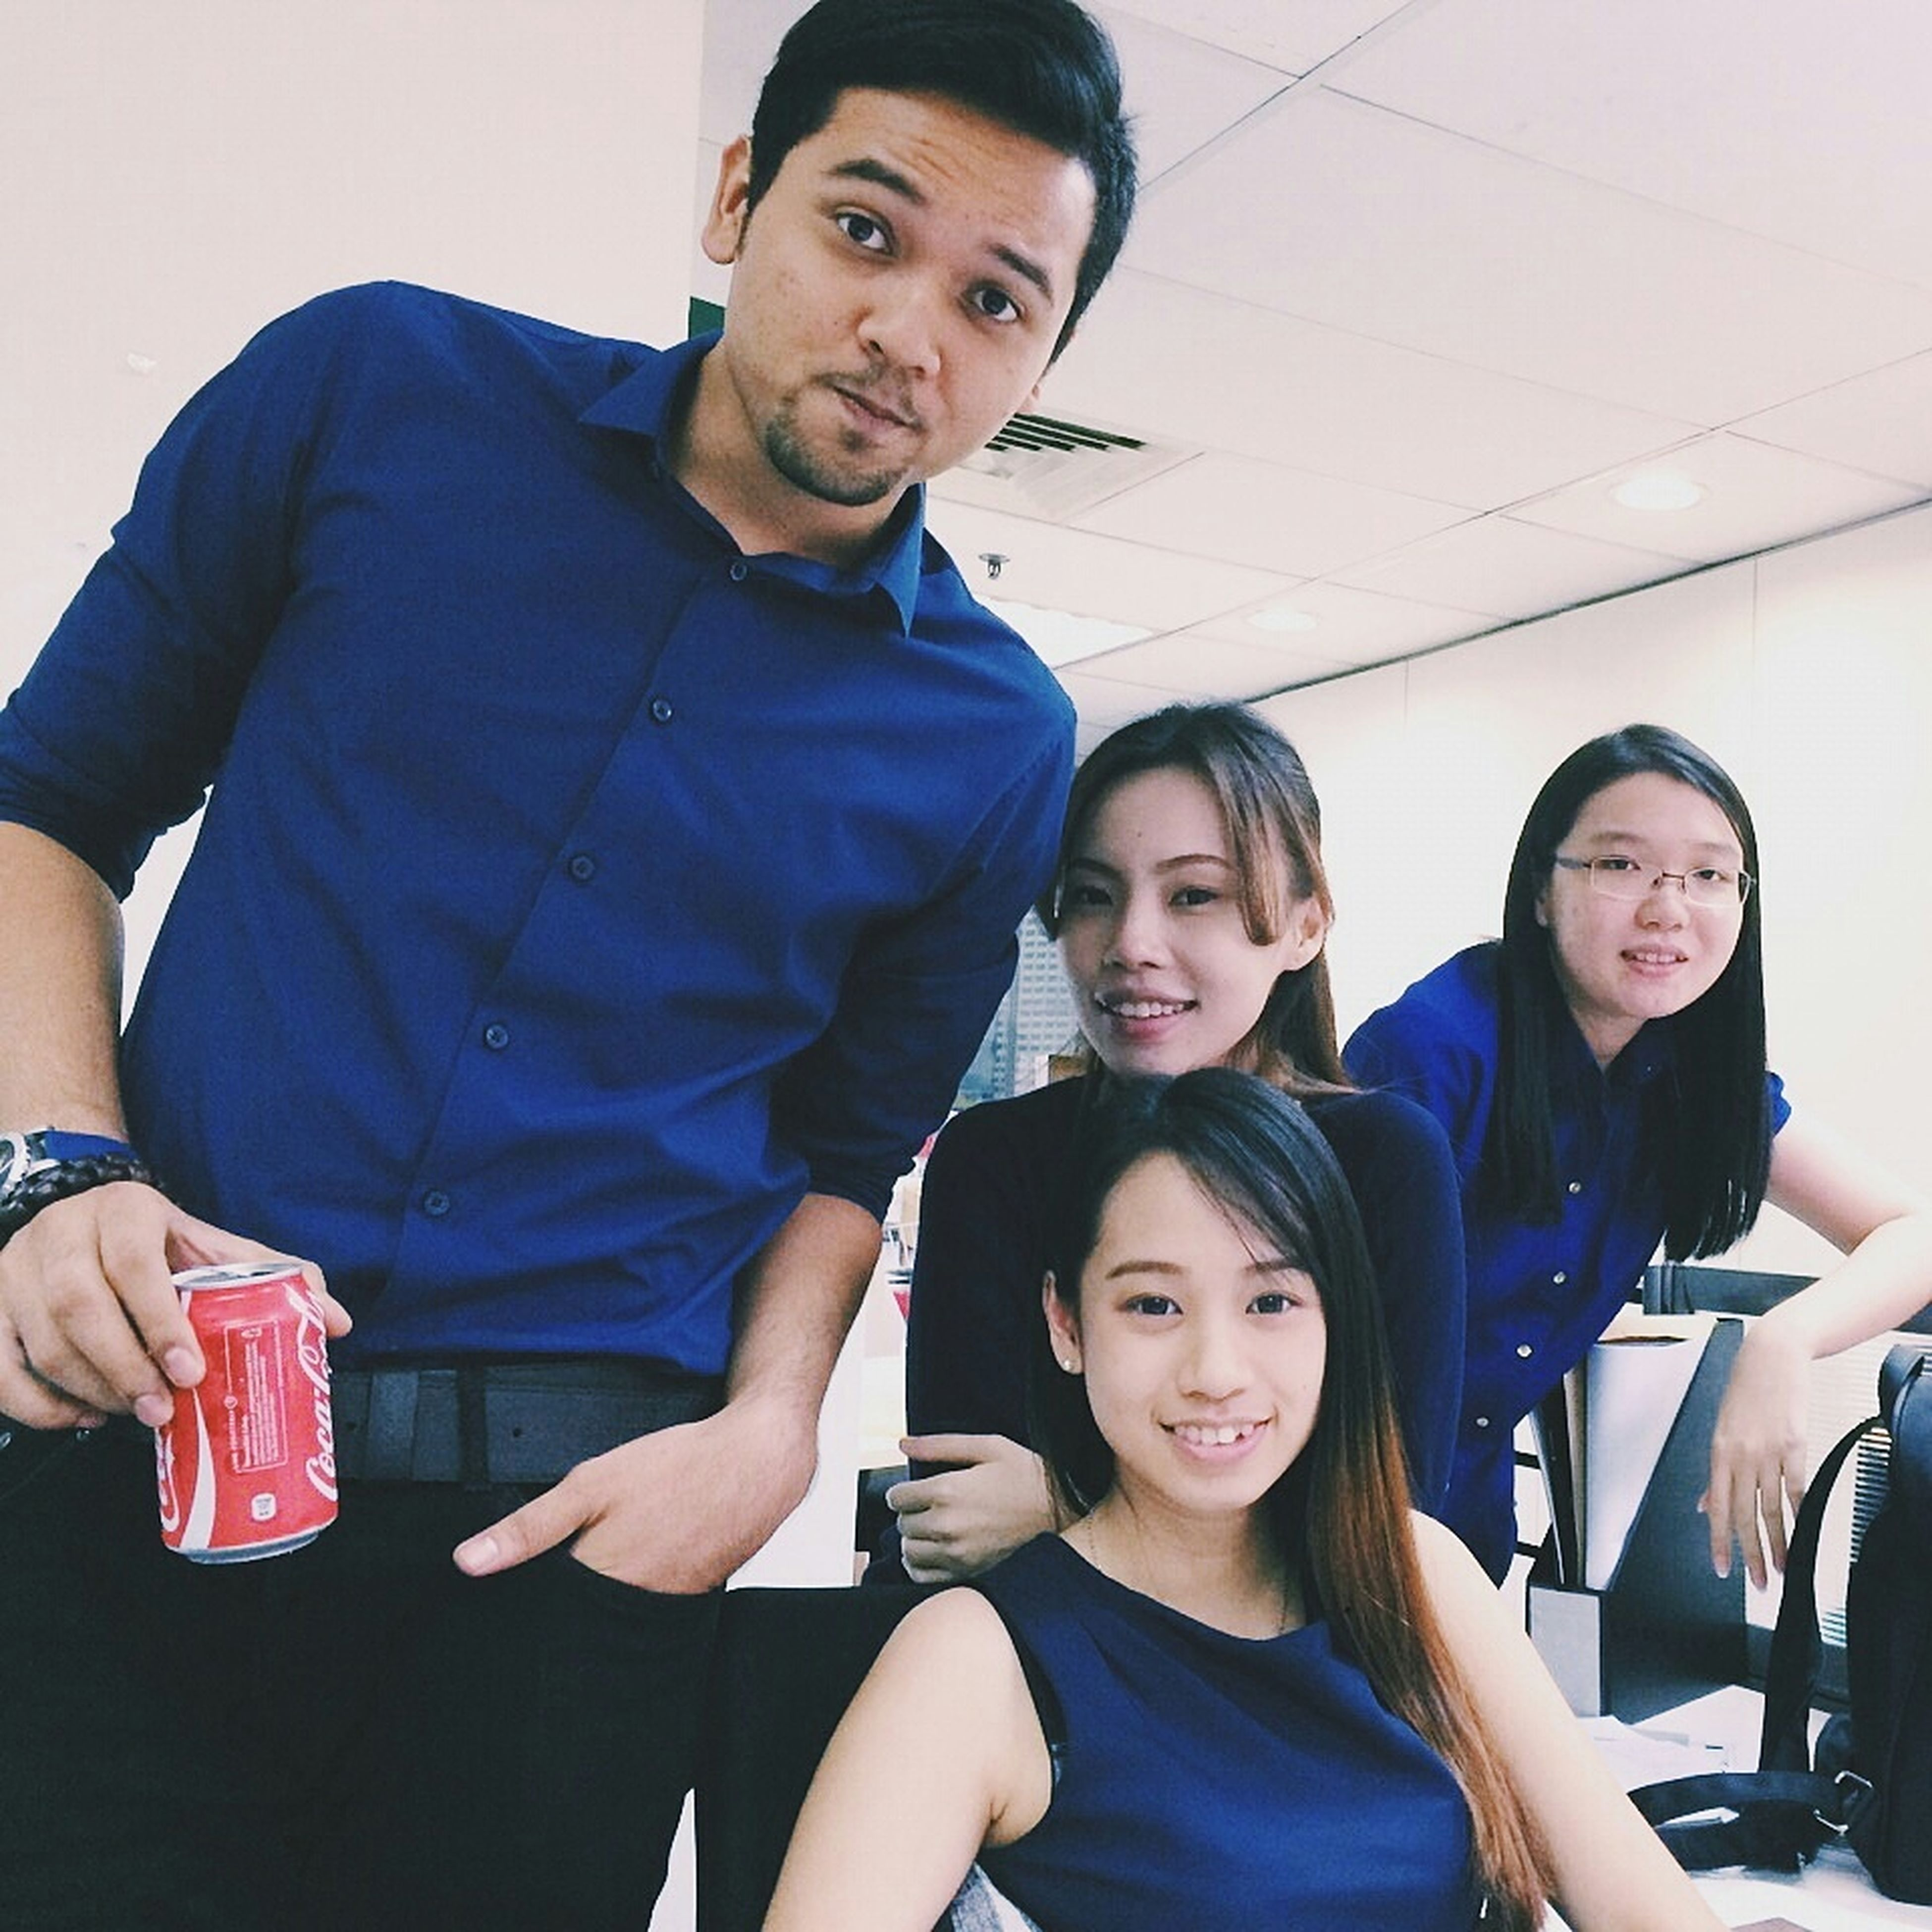 Good Morning Its FRIDAY  Cheese! Taking Photos We Are Blue That's Me Sunny Girl Sunny Us Hi! Working Day